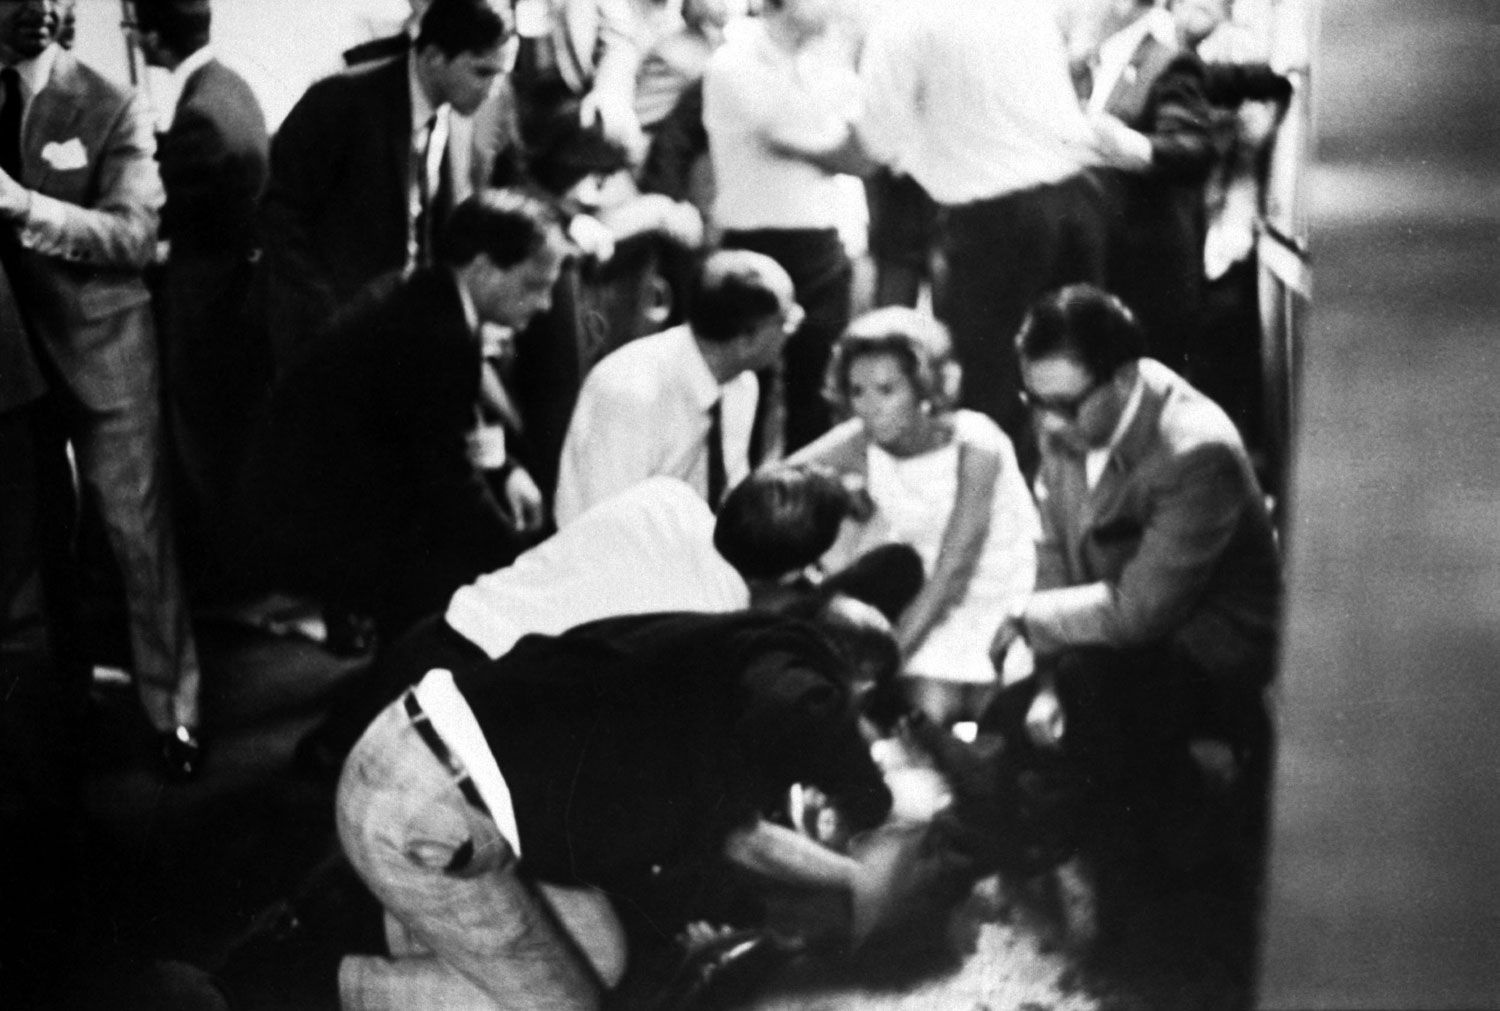 the assassination of robert f kennedy June 5, 1968: presidential candidate robert f kennedy lies on the floor at the ambassador hotel in los angeles moments after he was shot in the head.